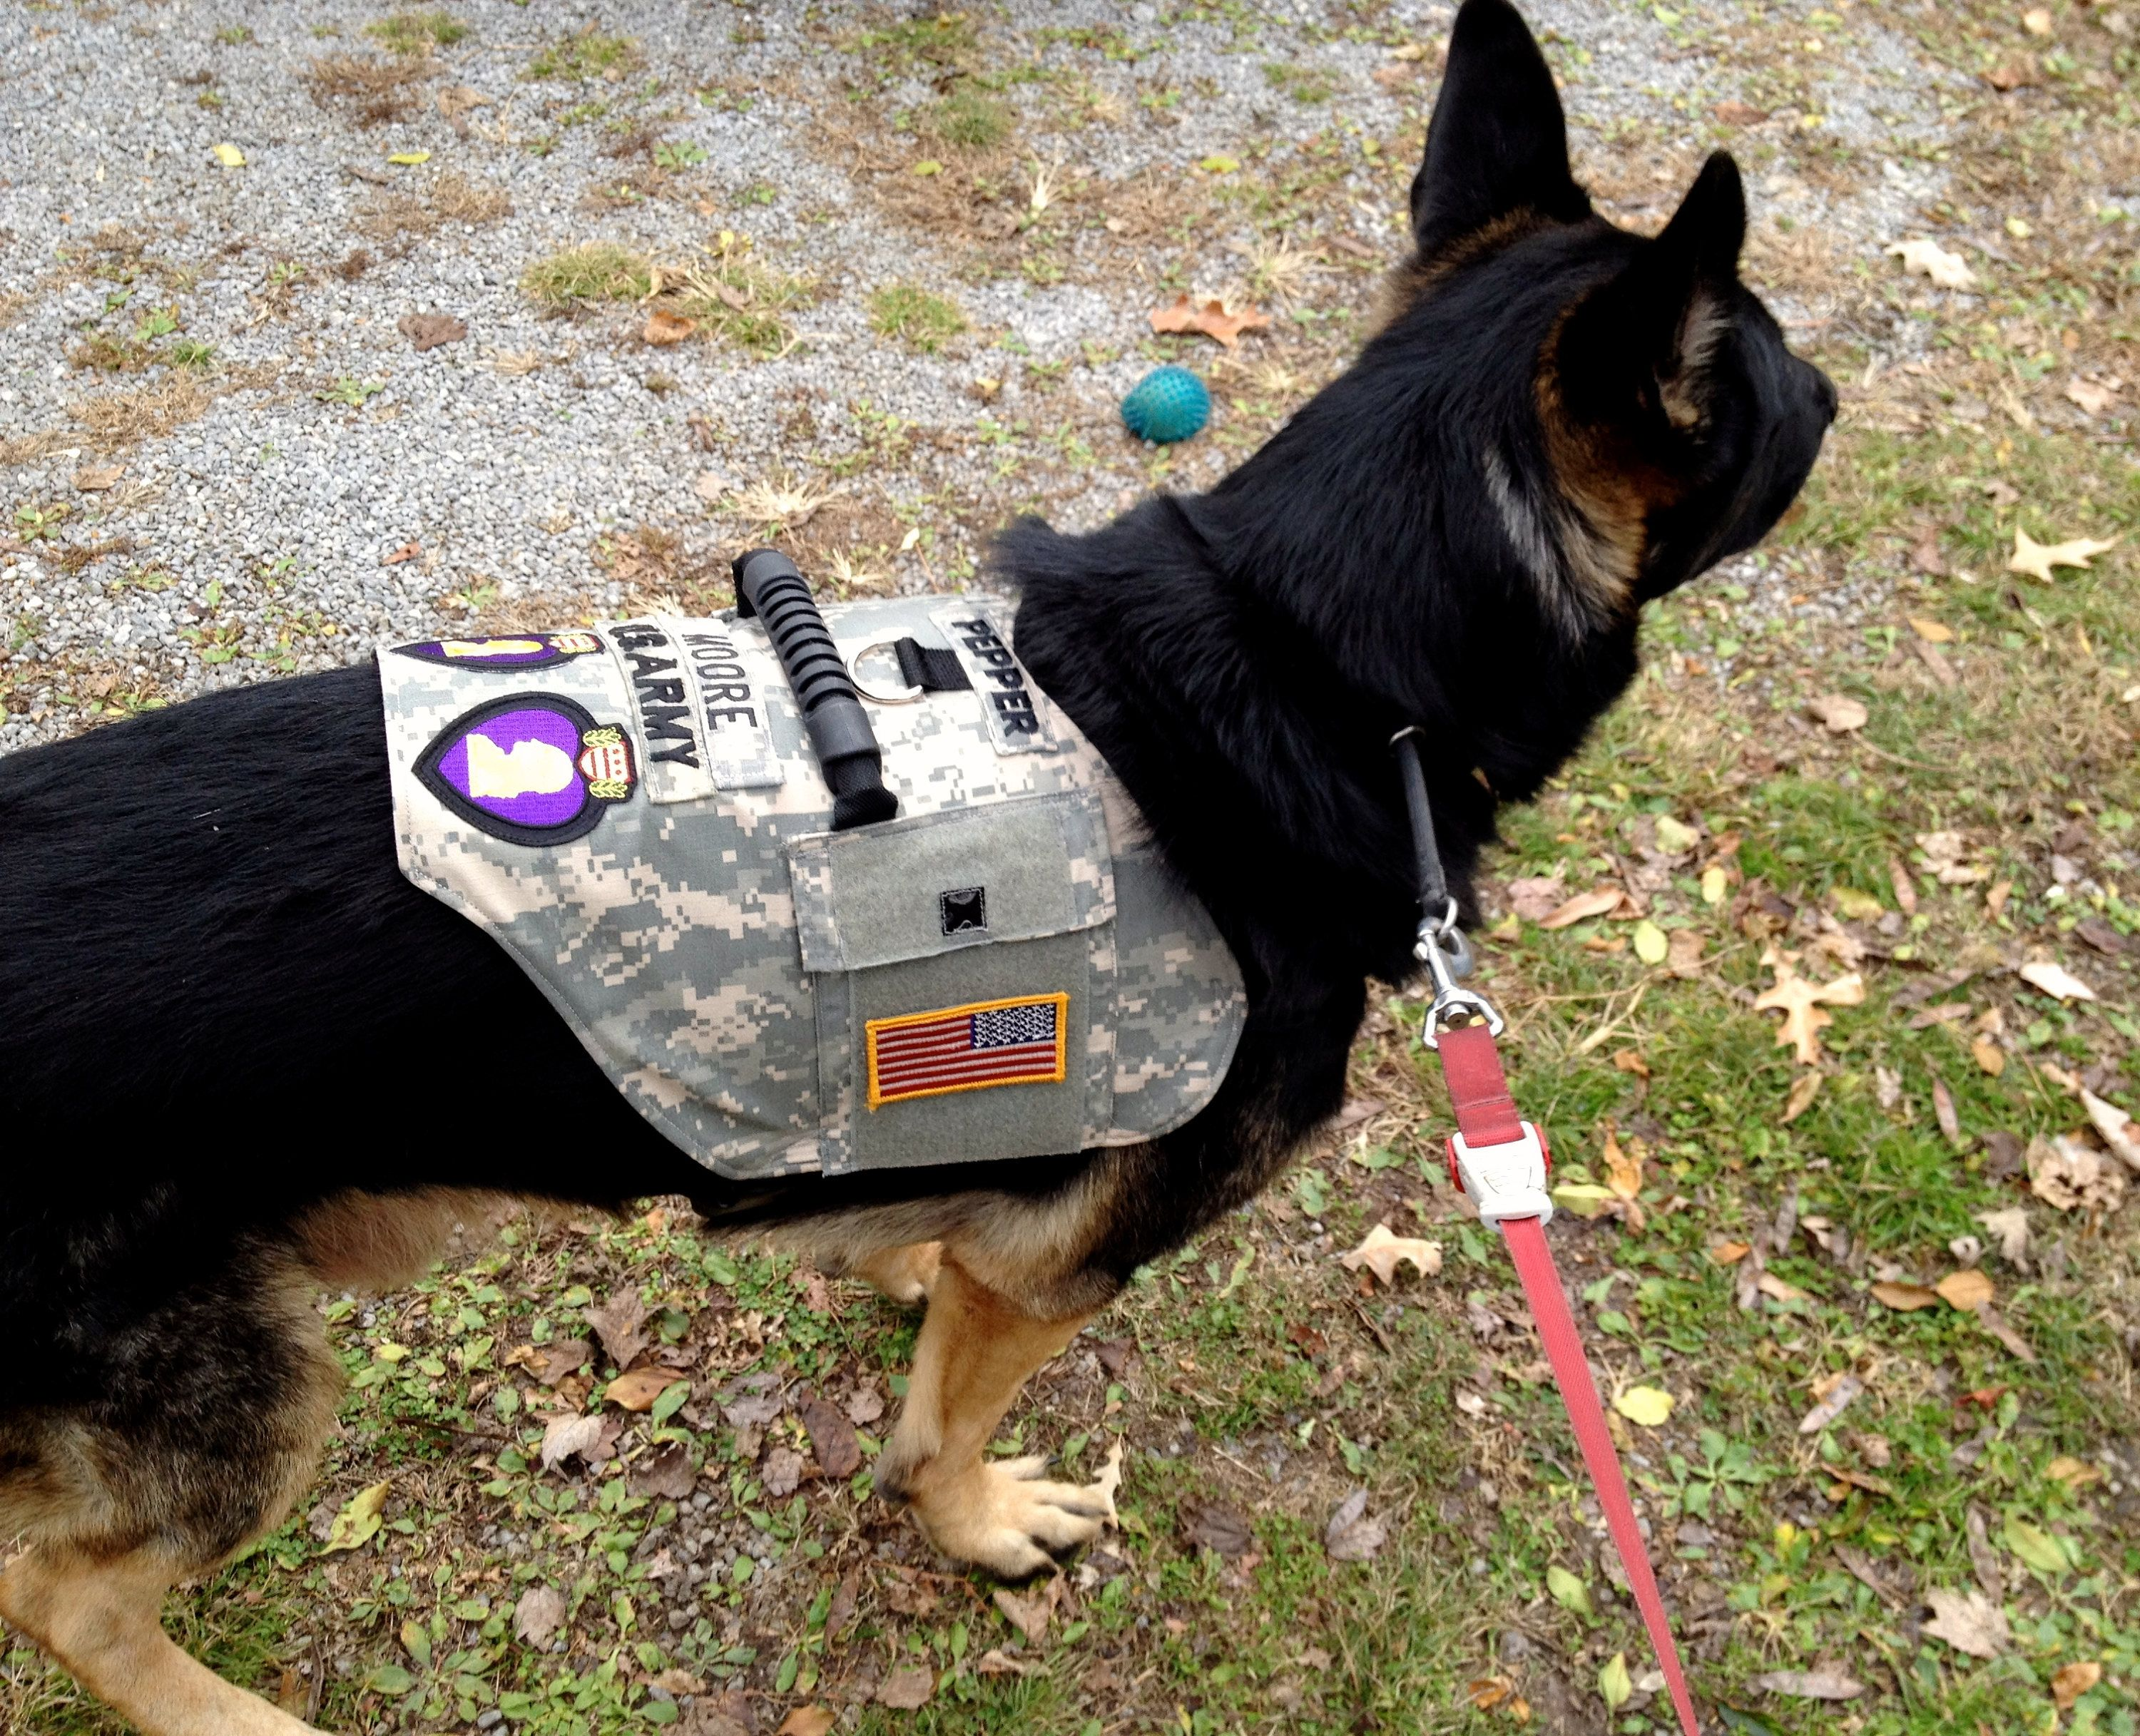 Vests For Vets Send Me Your Uniform Tell Me What You Need I Ll Make The Vest To Fit Your Service Dog By Sewservice Service Dogs Service Dog Vests Dog Vests